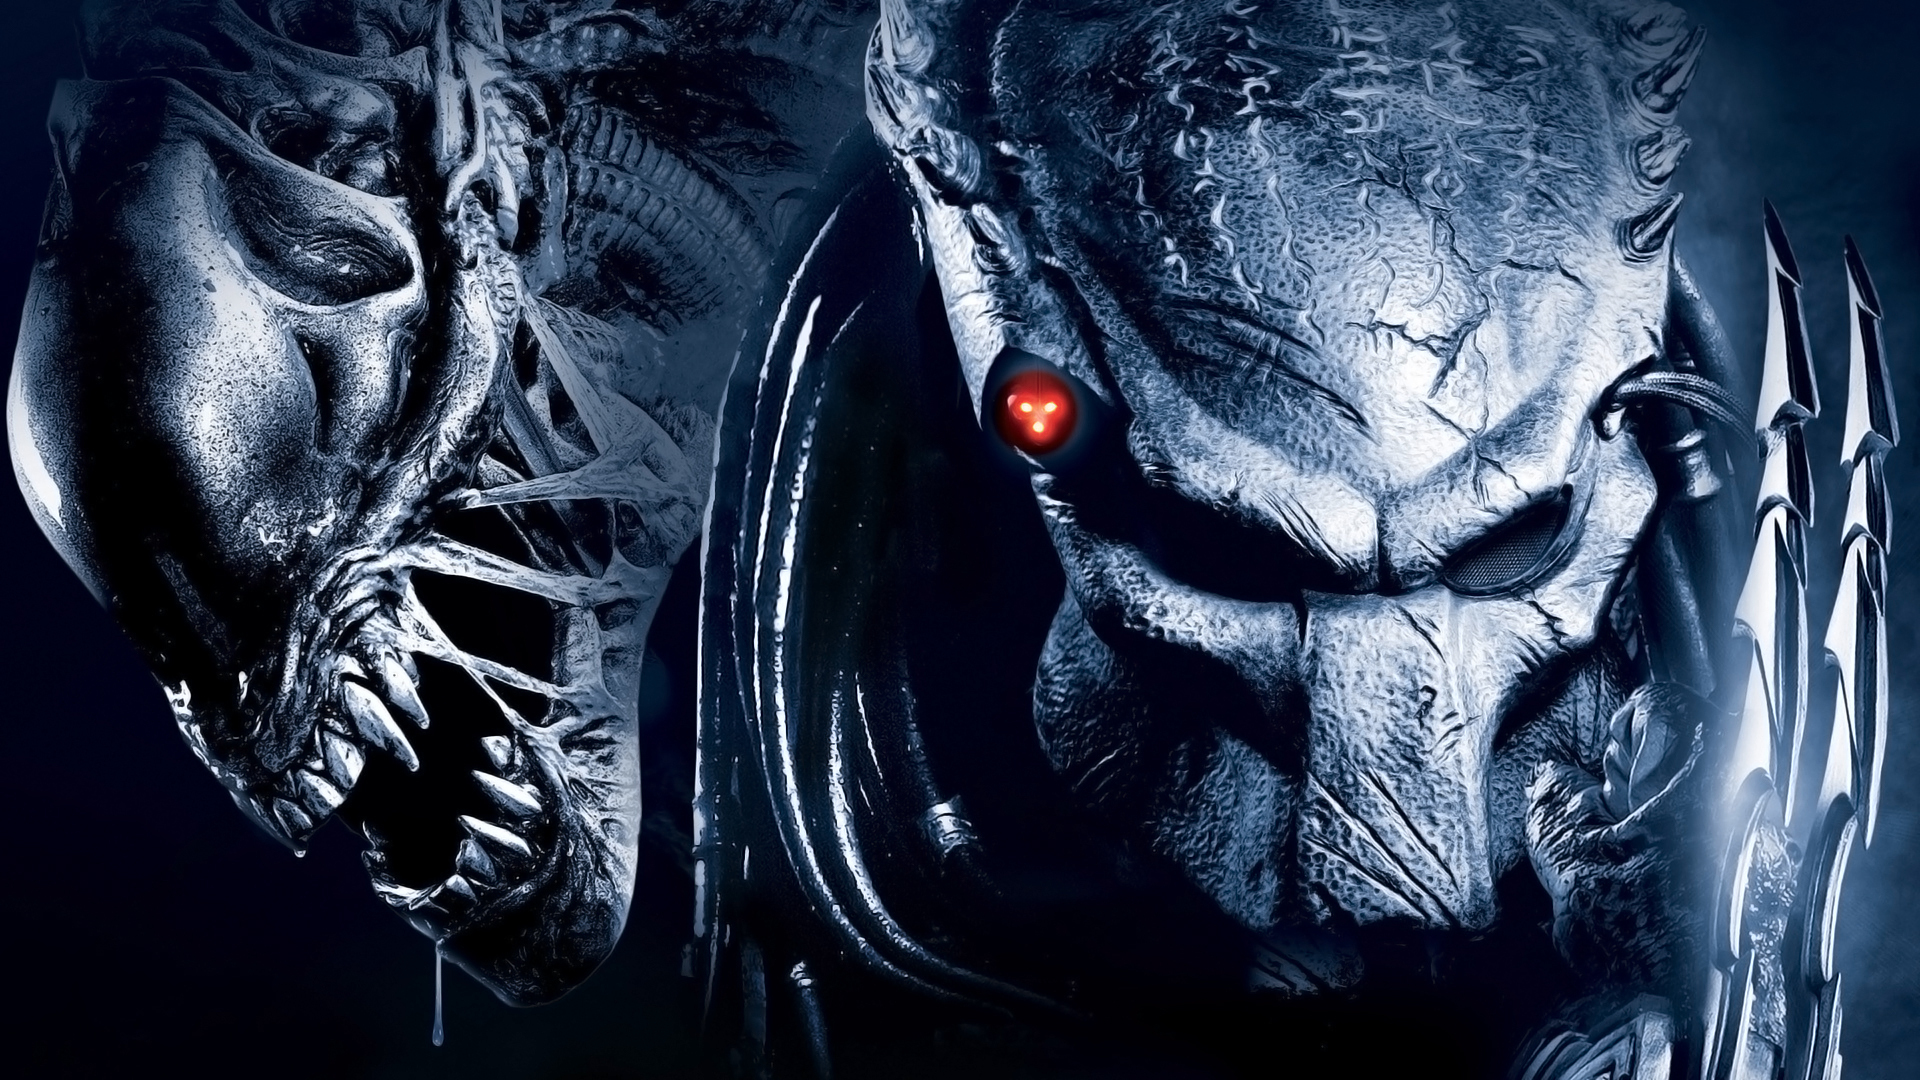 alien vs predator wallpaper 1 | wallpapersbq